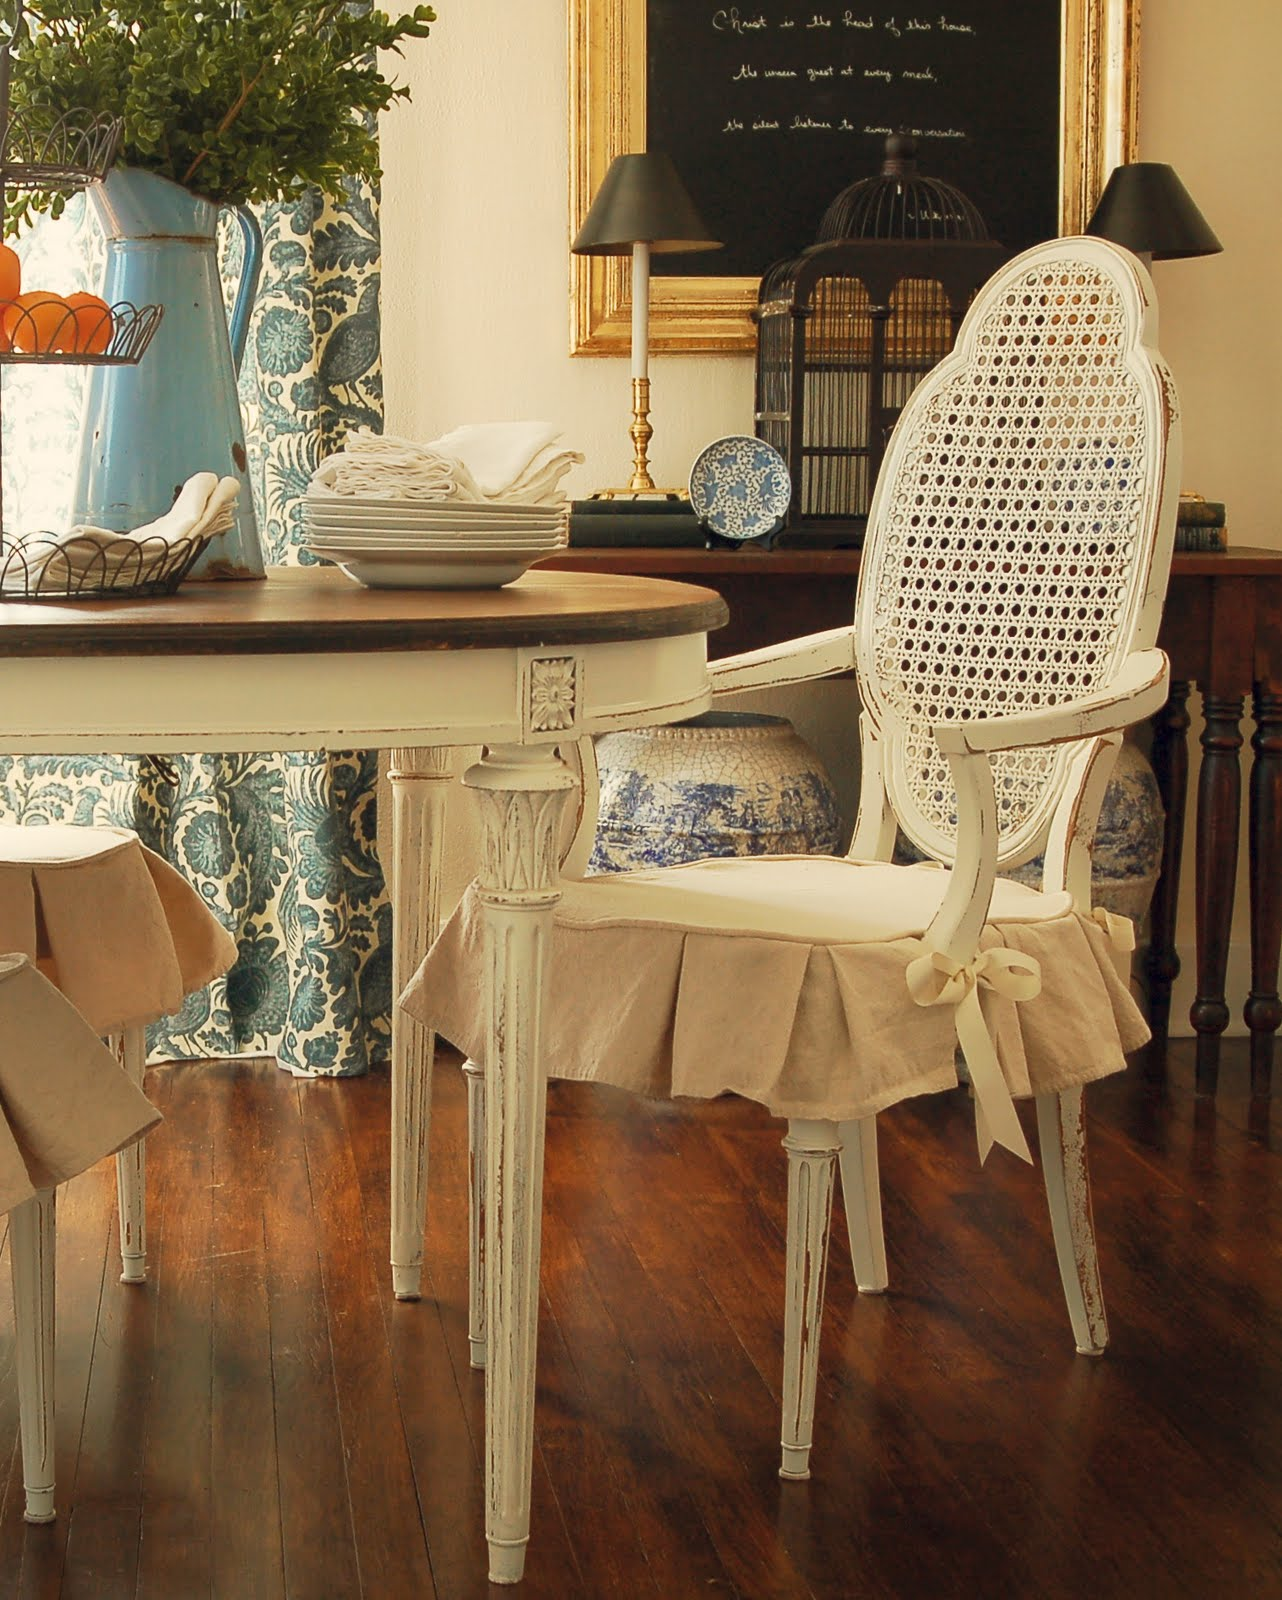 Captivating Shabby Chic Dining Room Ideas With Vintage Dining Chairs Adorned With  Slipcovers For Dining Room Chairs